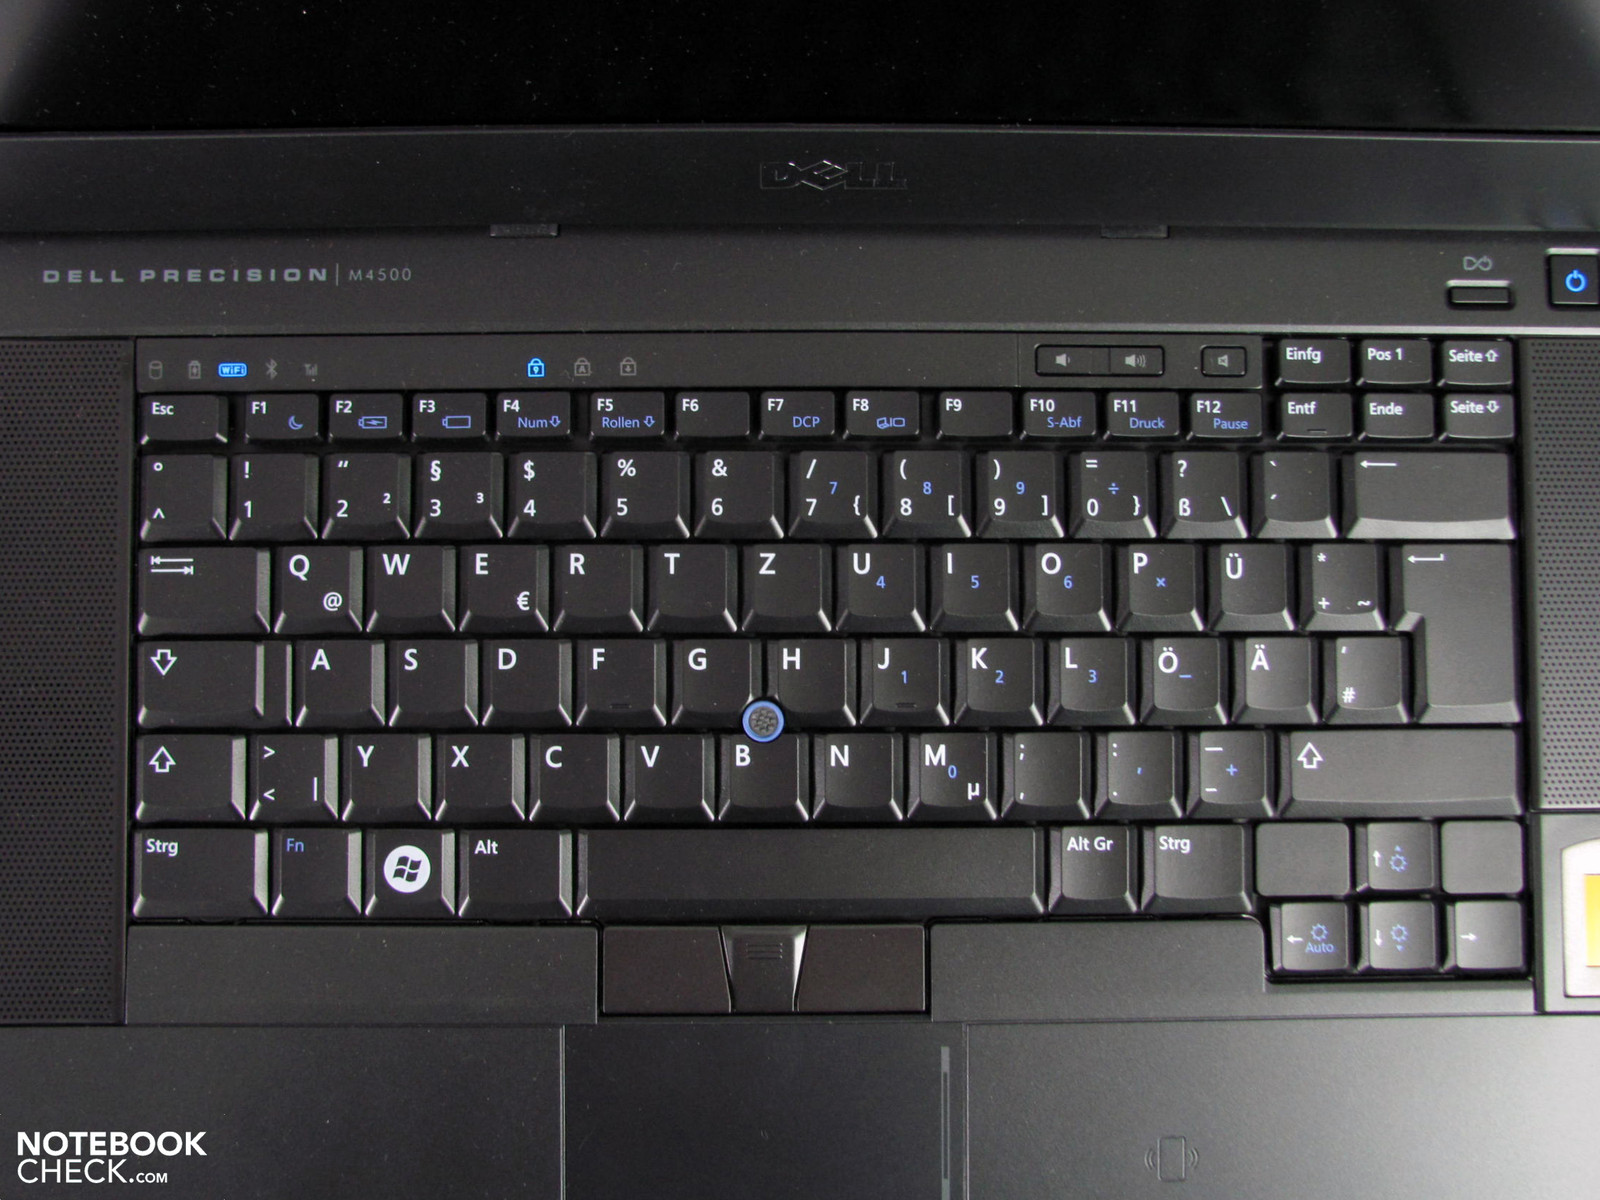 Review Dell Precision M4500 (i7-940XM) Notebook